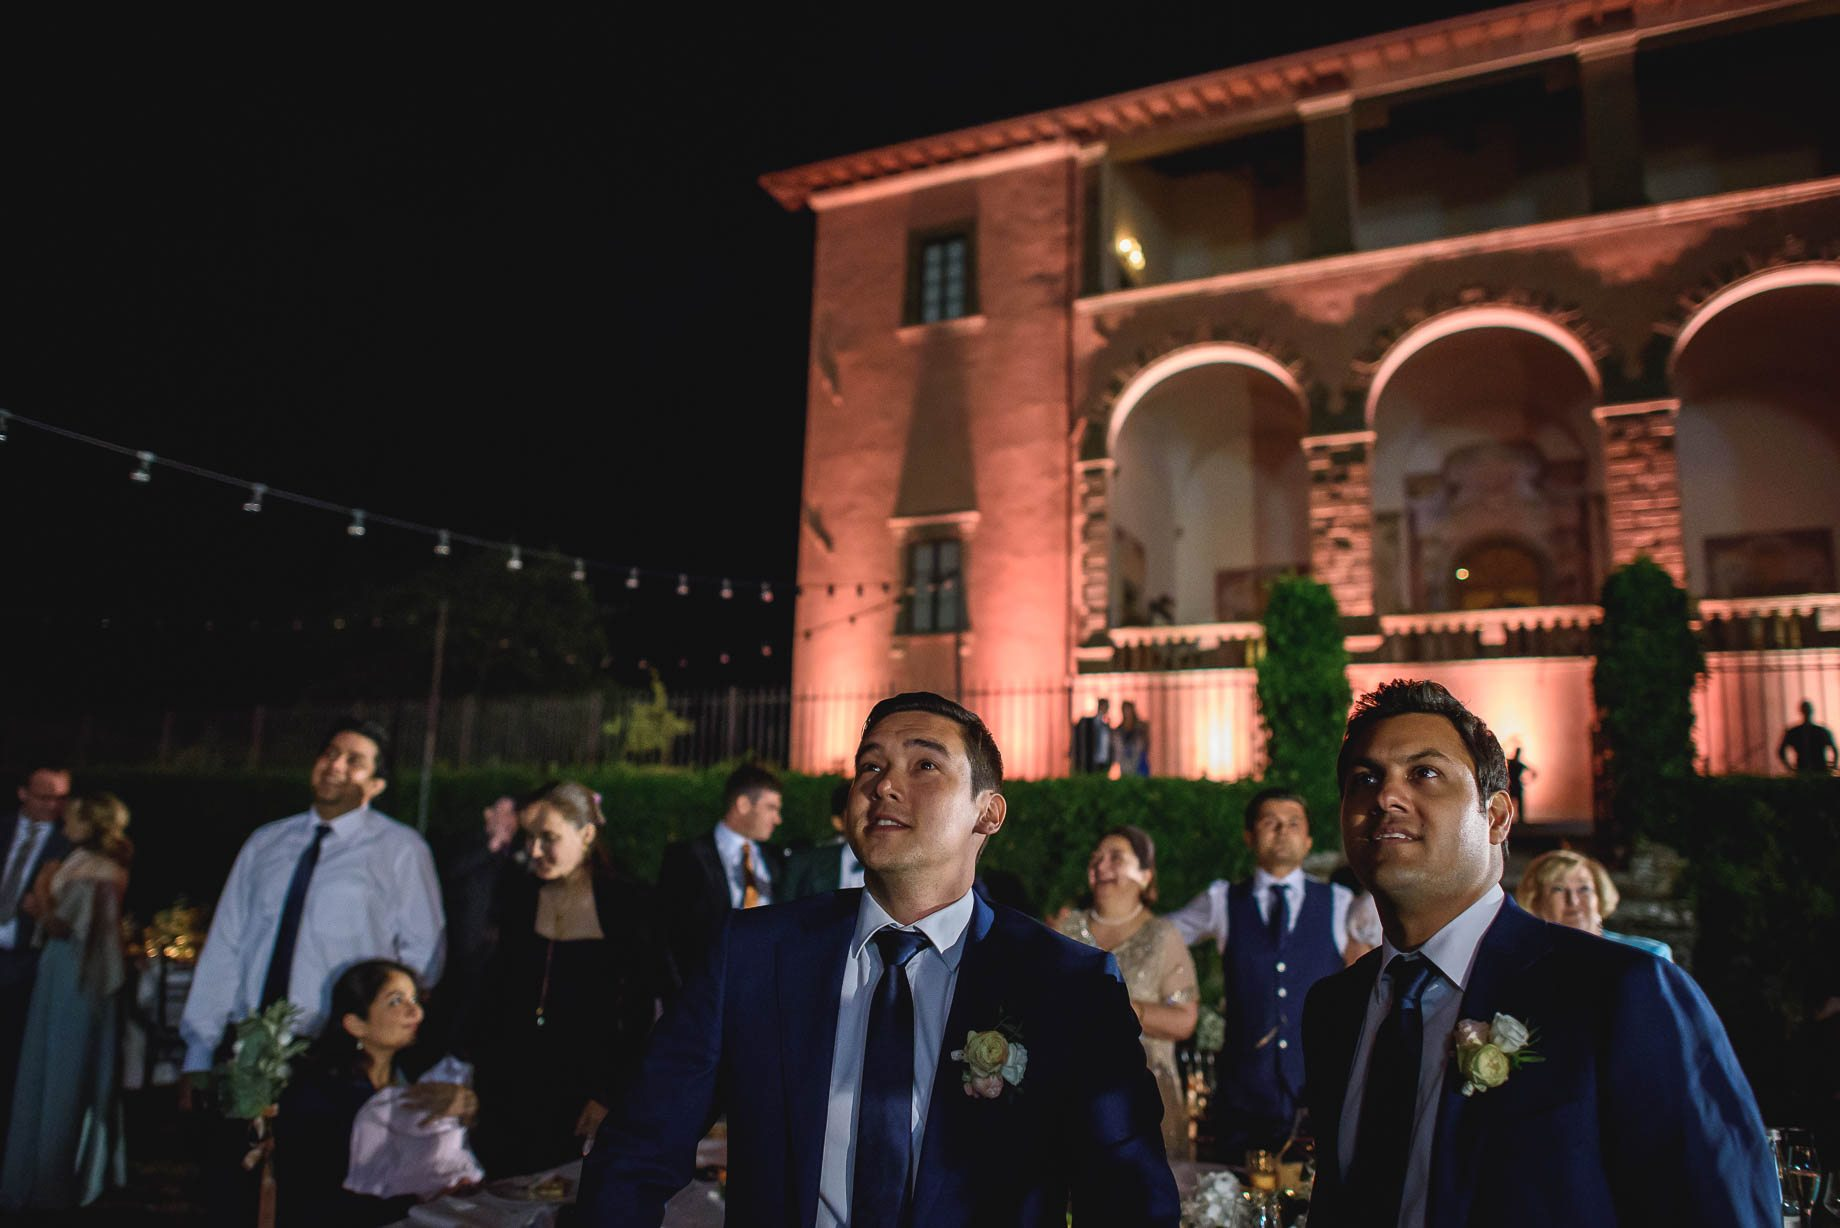 Tuscany wedding photography - Roisin and Moubin - Guy Collier Photography (208 of 251)